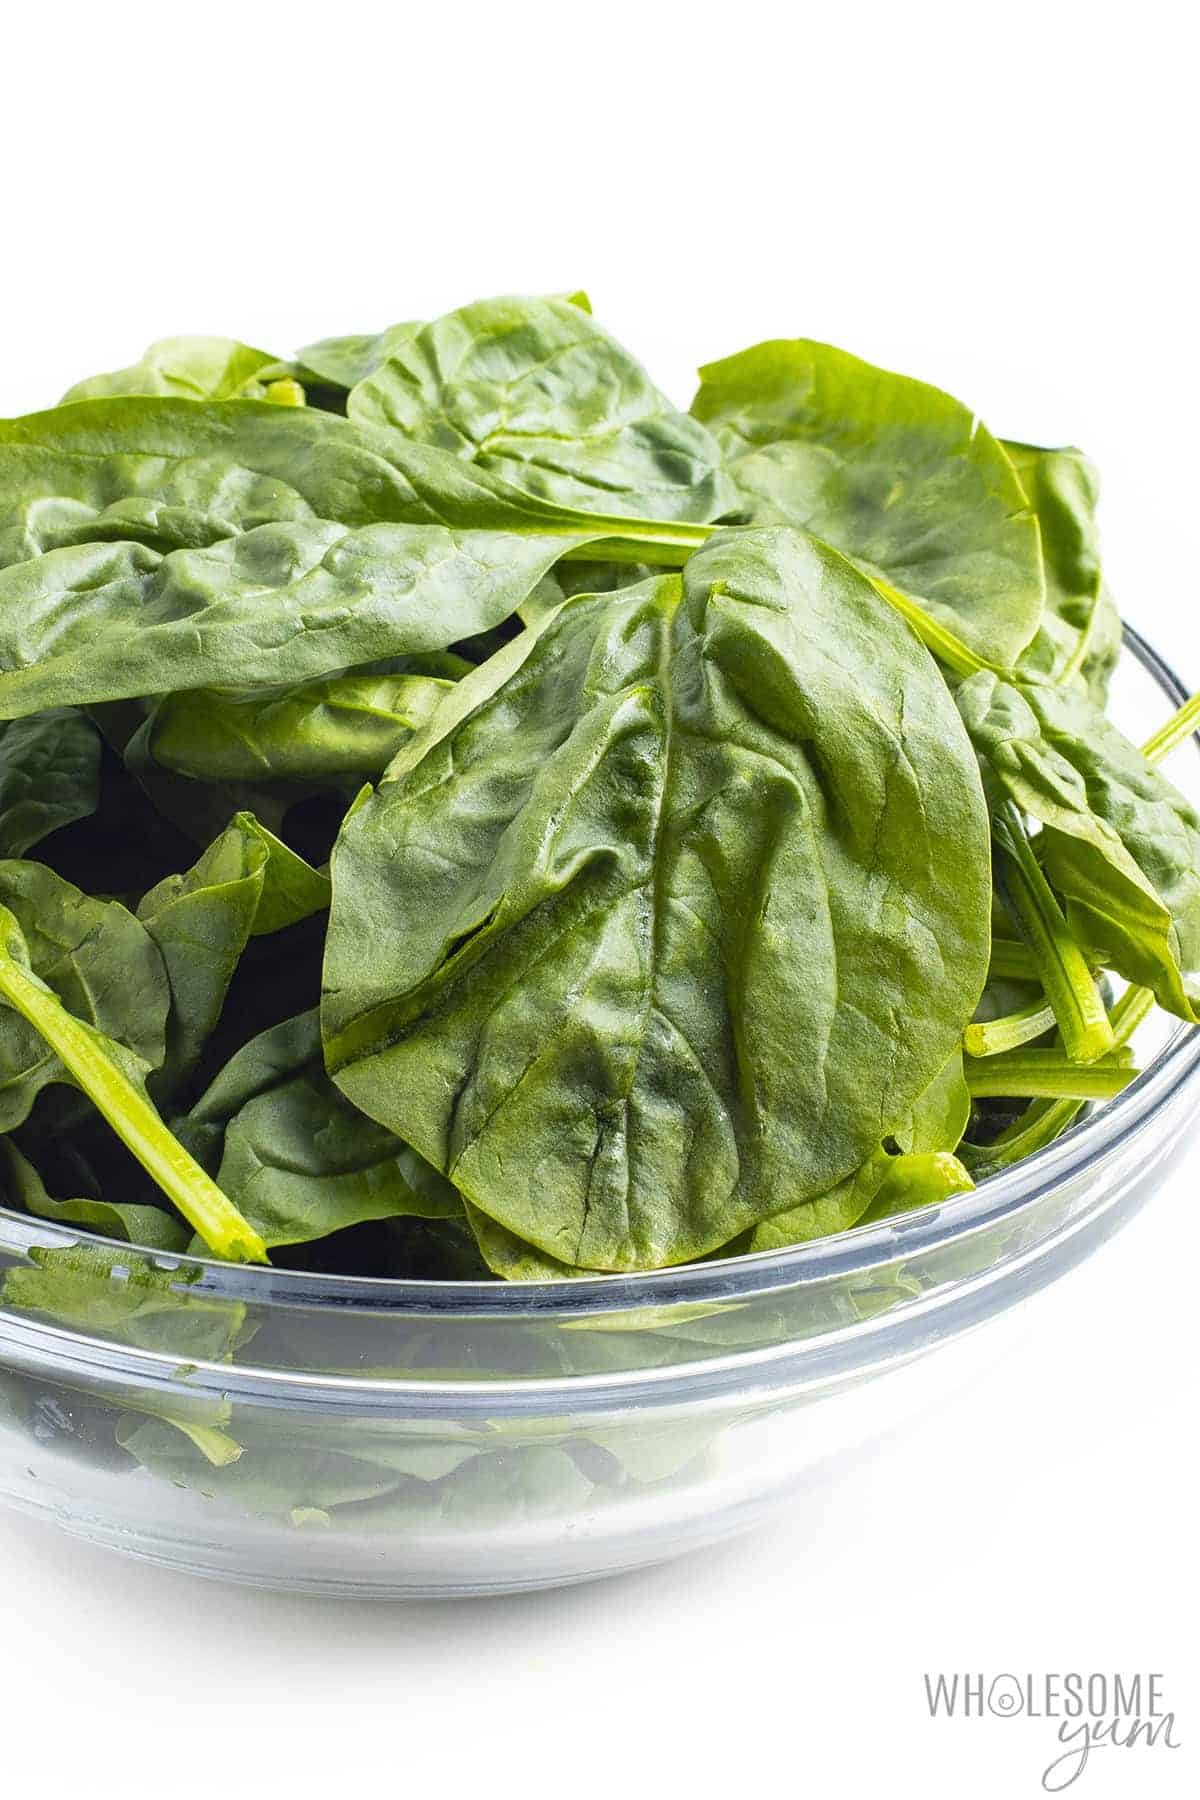 Is spinach keto? This bowl of raw spinach is keto friendly.